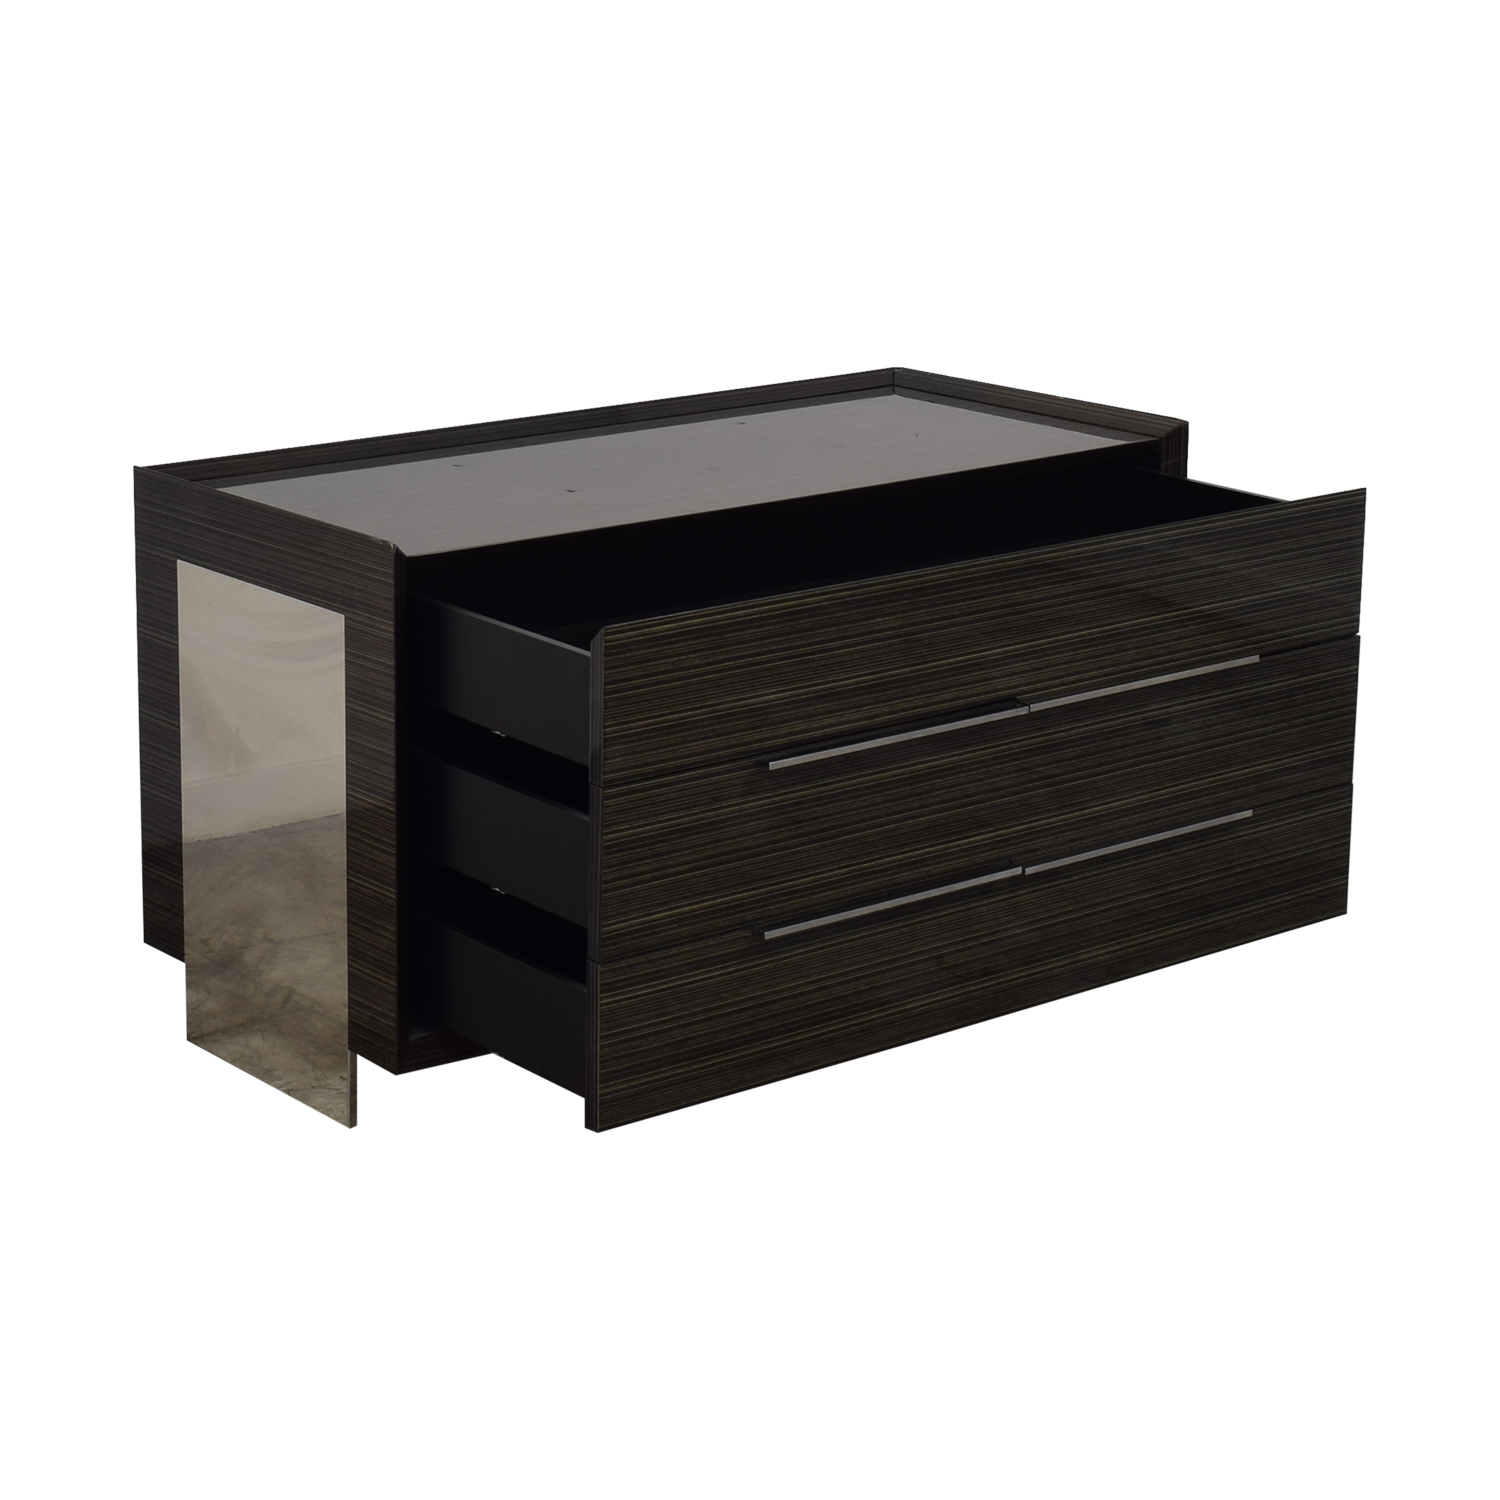 Rossetto Mirrored Dresser / Dressers